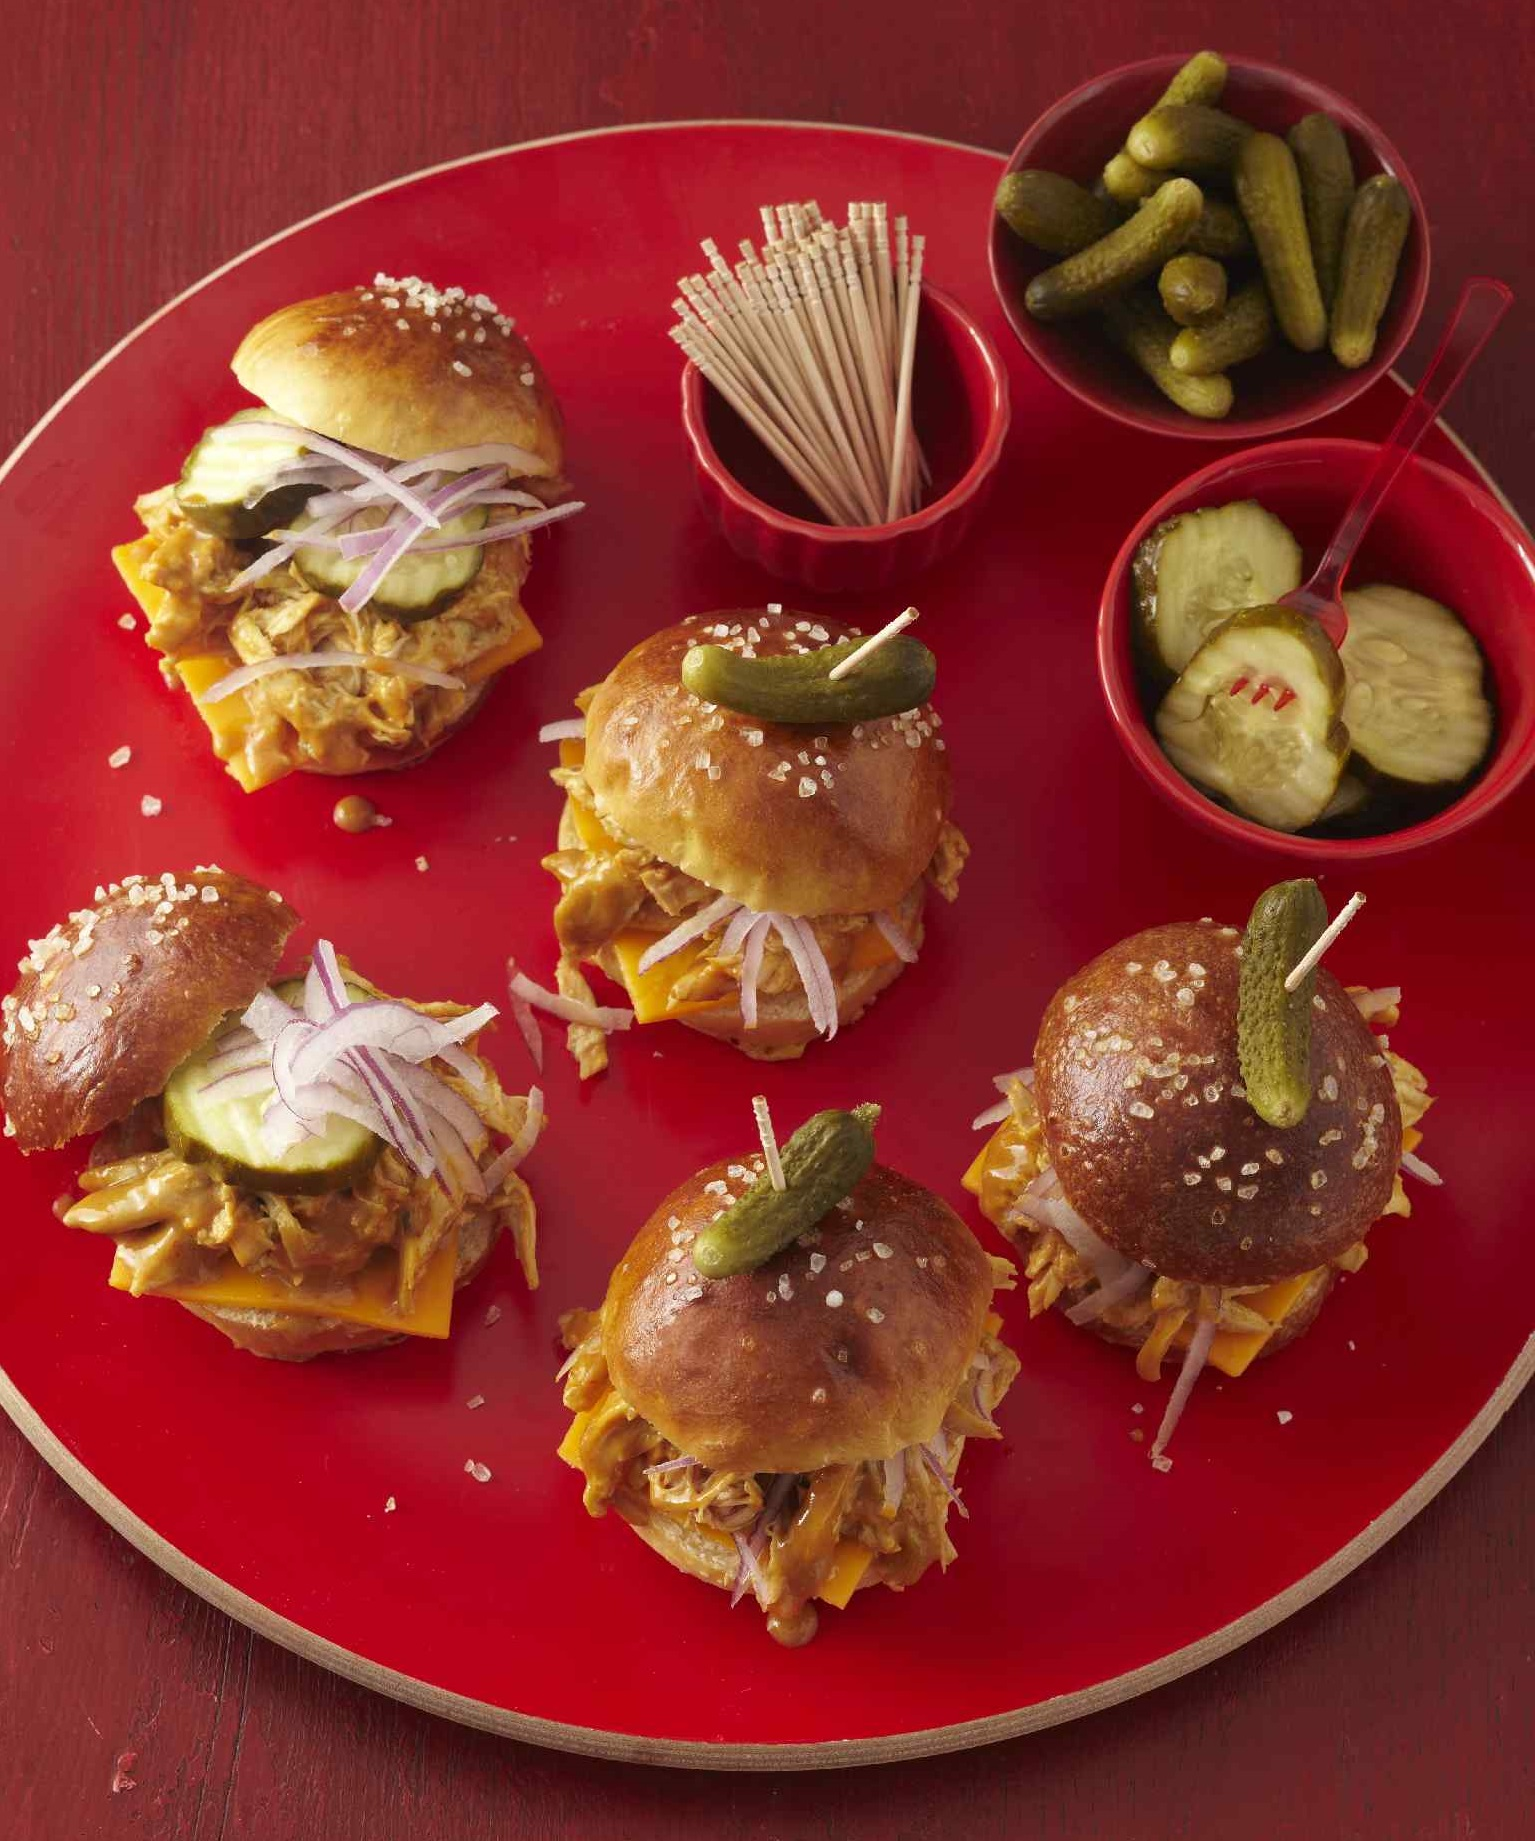 Red platter of chicken slider sandwiches topped with pickles